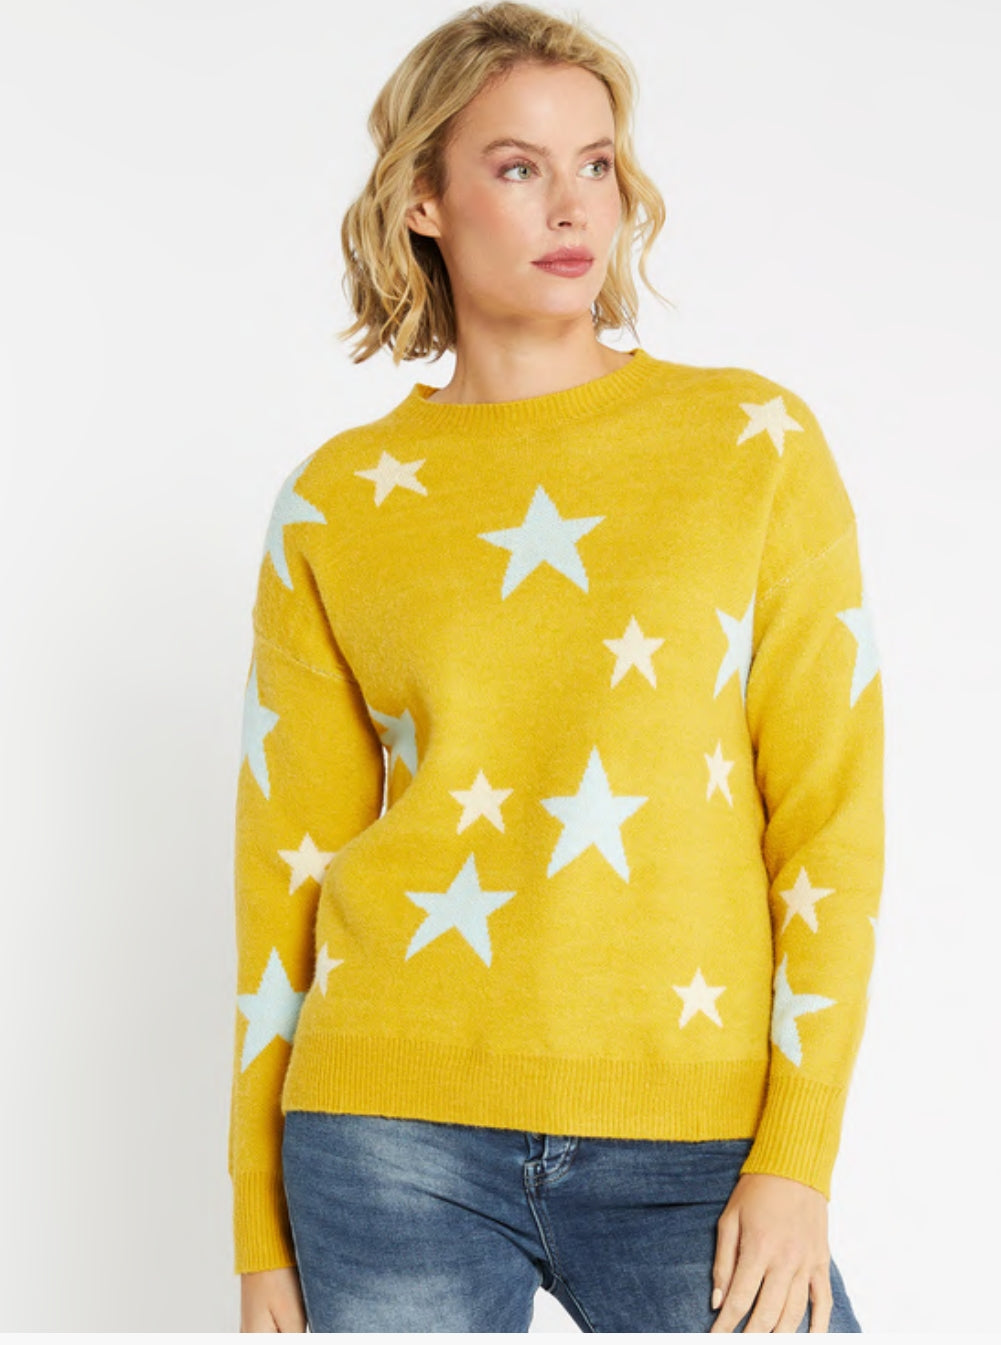 Two Tone Star Knit Mustard